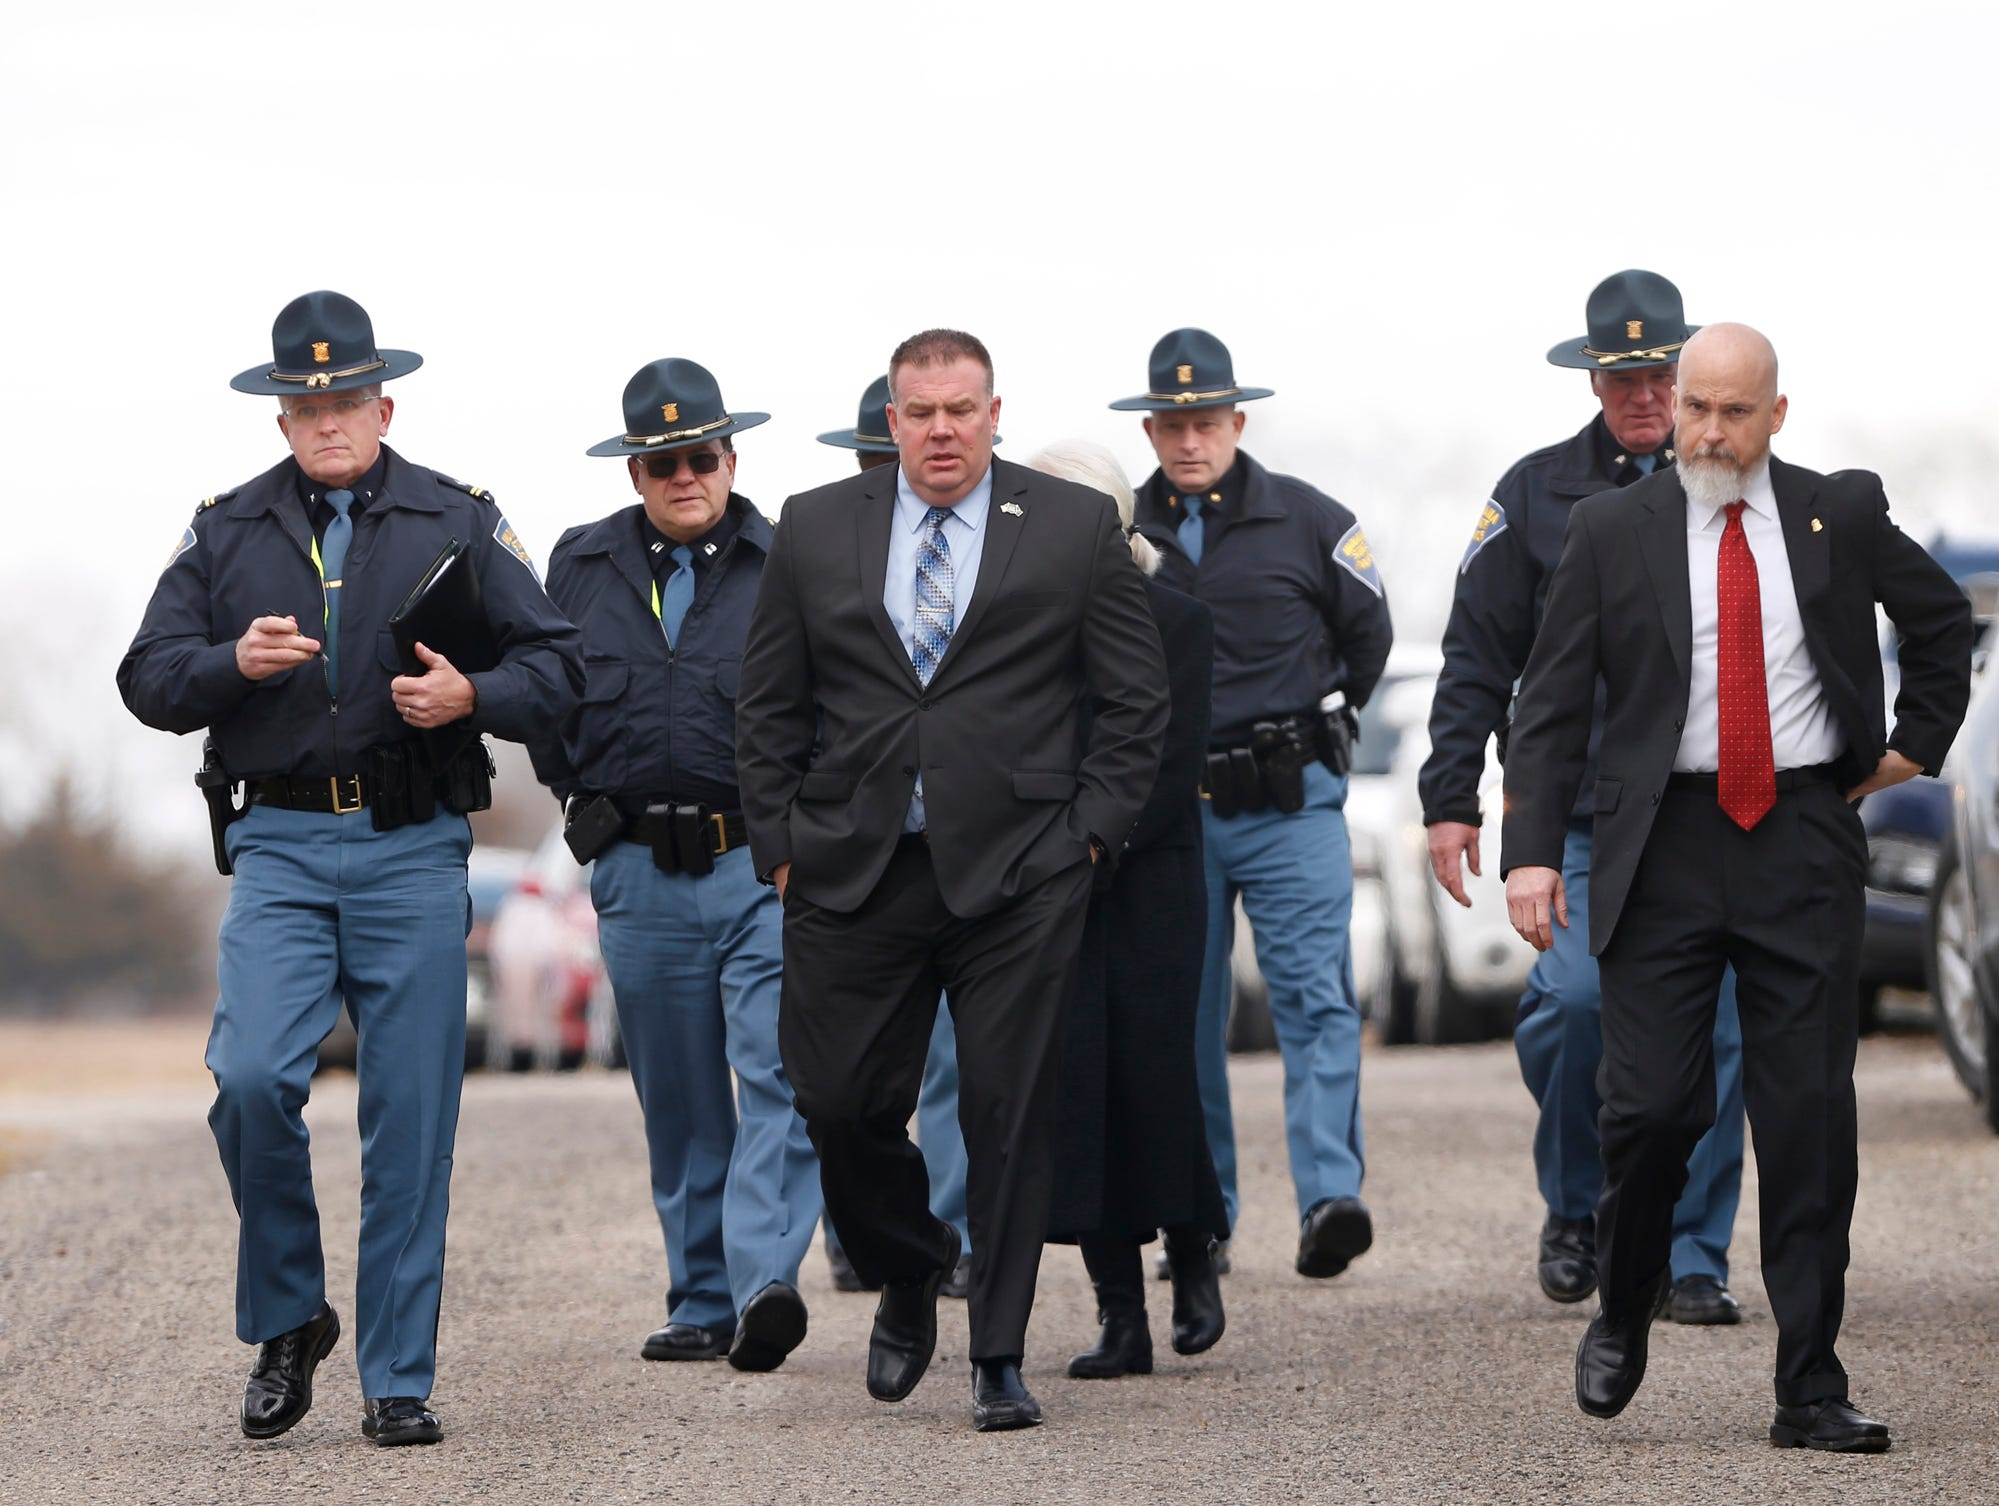 Indiana State Police Superintendent Doug Carter, far left, and other members of ISP arrive for a press conference to address the latest on the investigation into the murder of Liberty German and Abigail Williams Tuesday, February 13, 2018, at the trail head of the Monon High Bridge Trail just east of Delphi. German and Williams were murdered February 13, 2017, as they hiked the Monon High Bridge Trail.